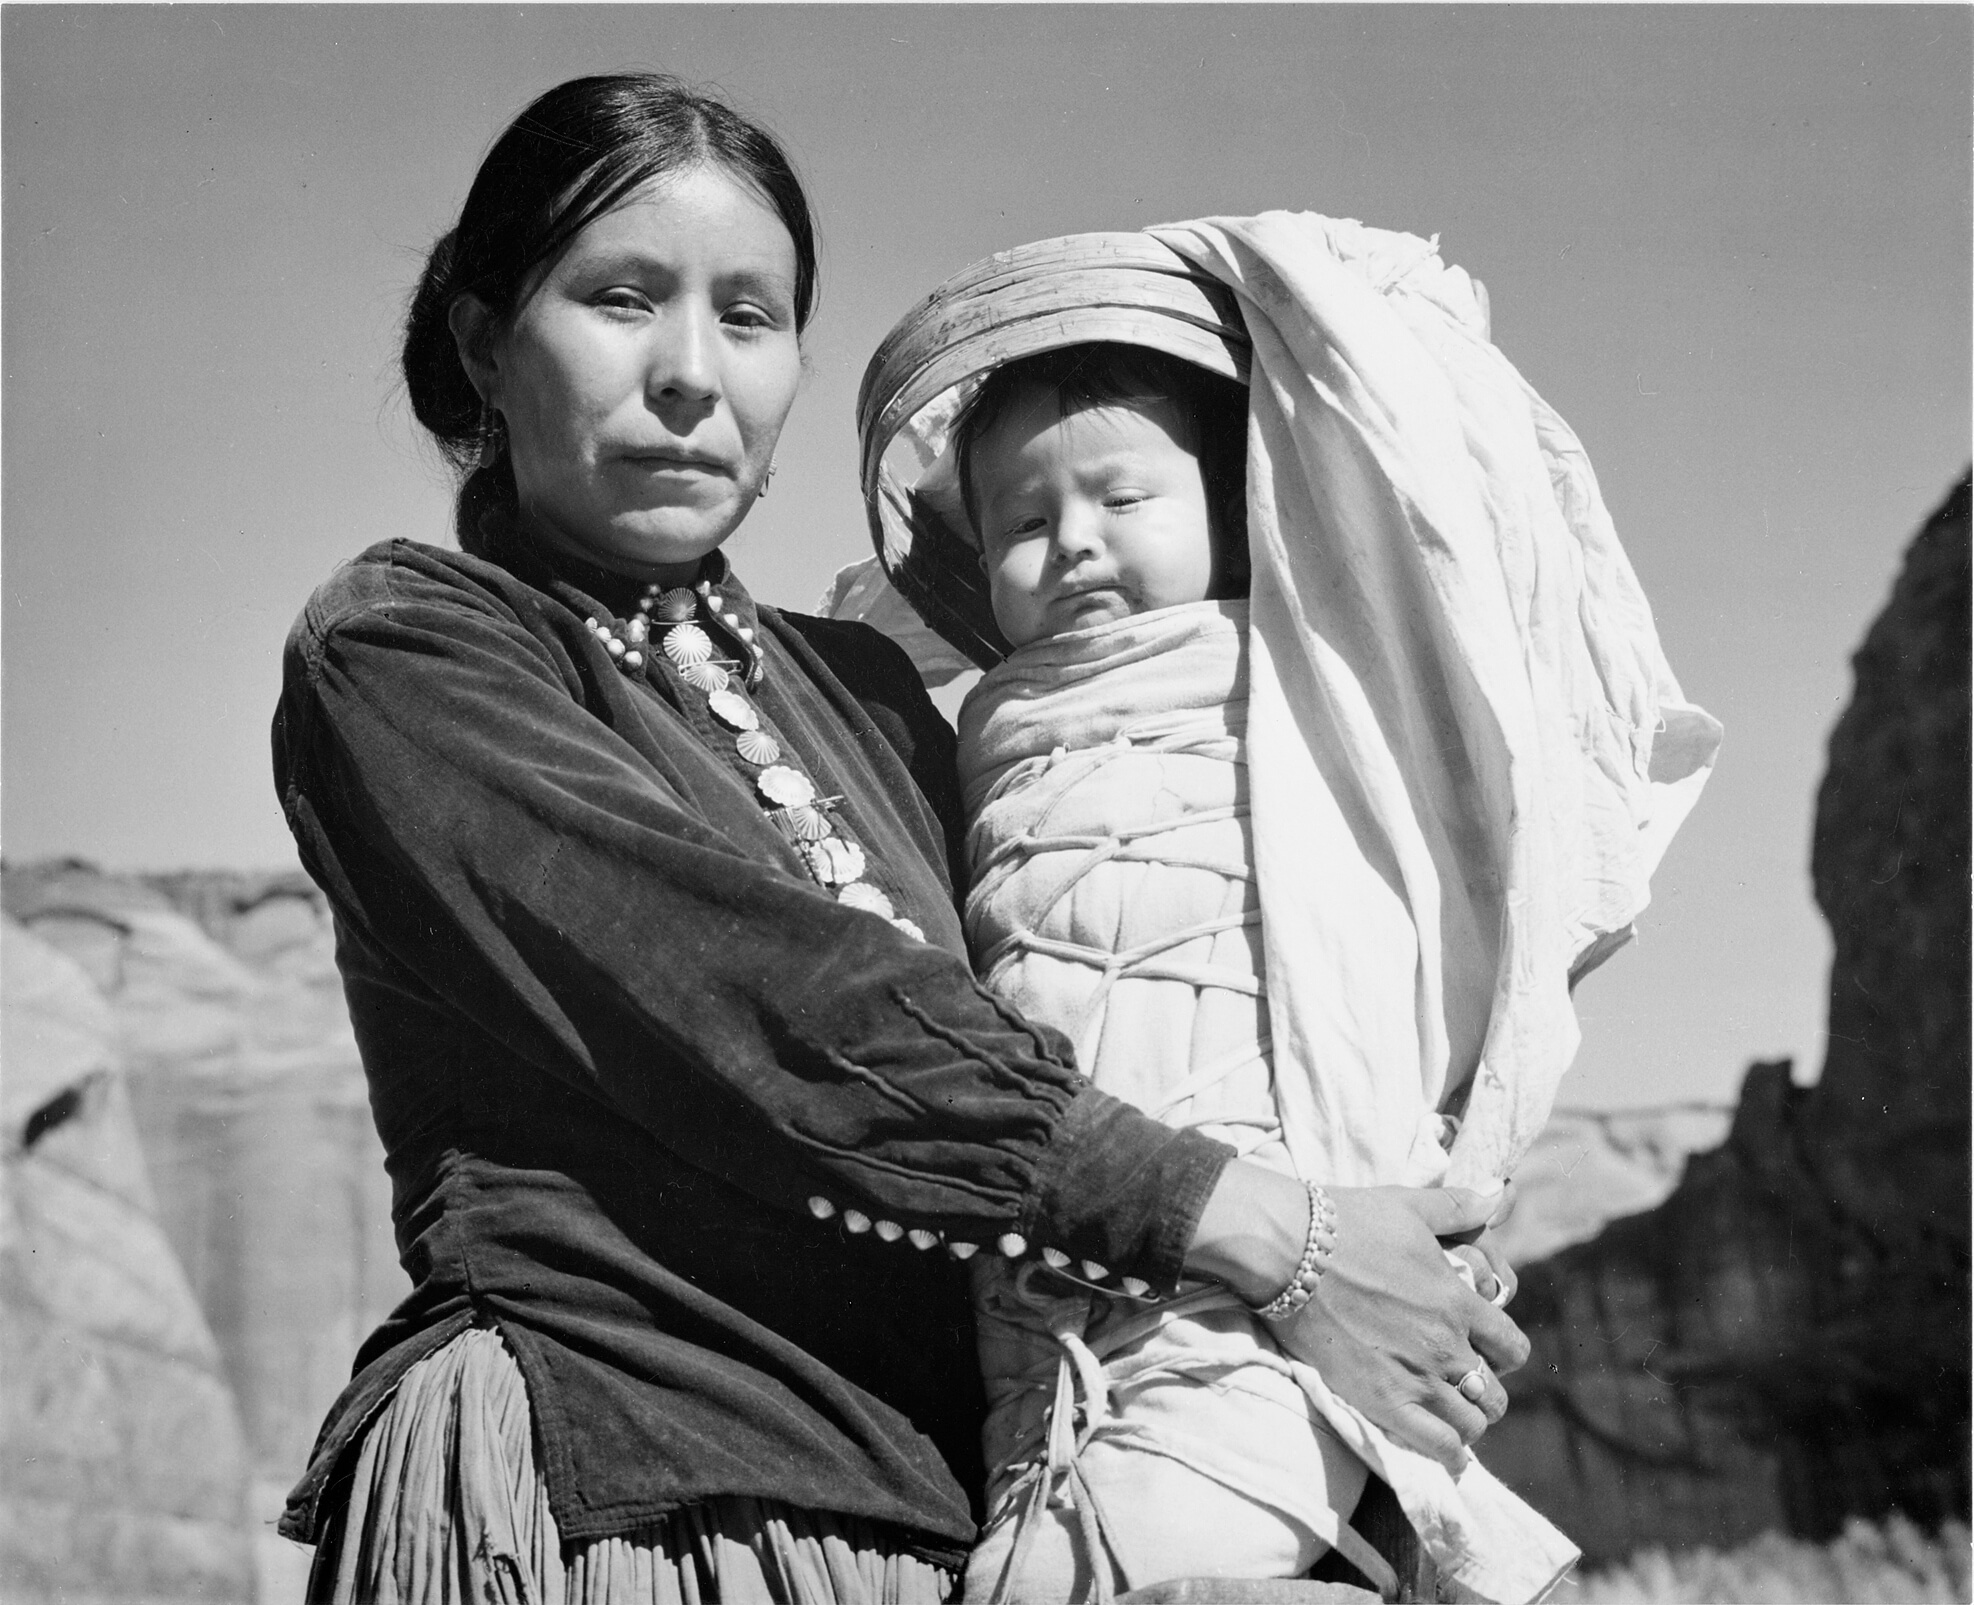 navajo_woman_and_infant_canyon_de_chelle_arizona-_canyon_de_chelly_national_monument_1933_-_1942_-_nara_-_519947